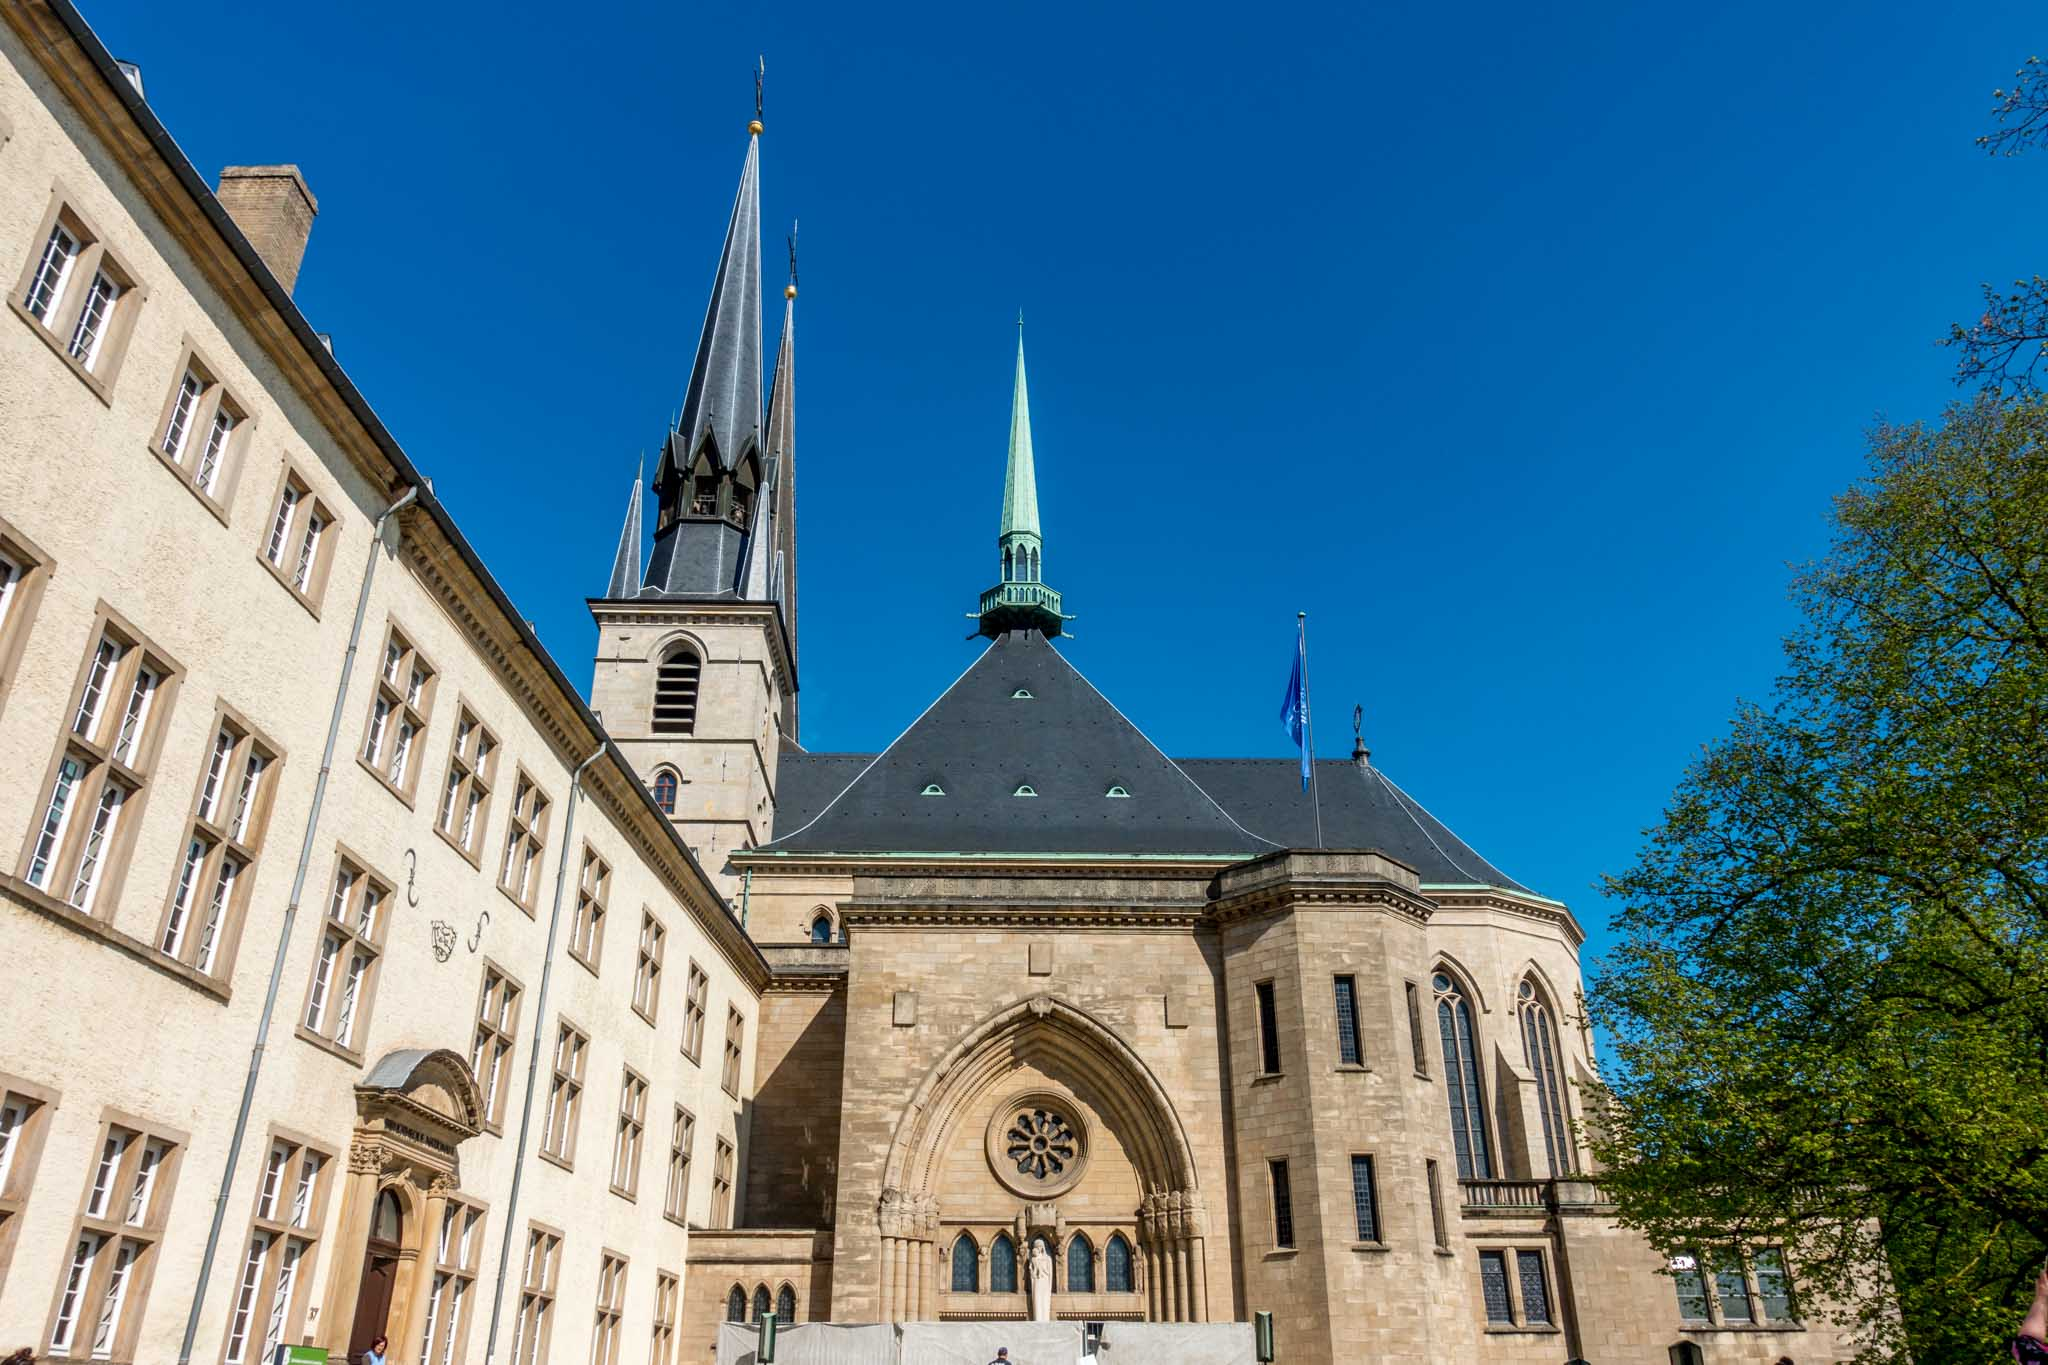 The country's only cathedral, Notre-Dame Cathedral is one of the top Luxembourg tourist attractions.